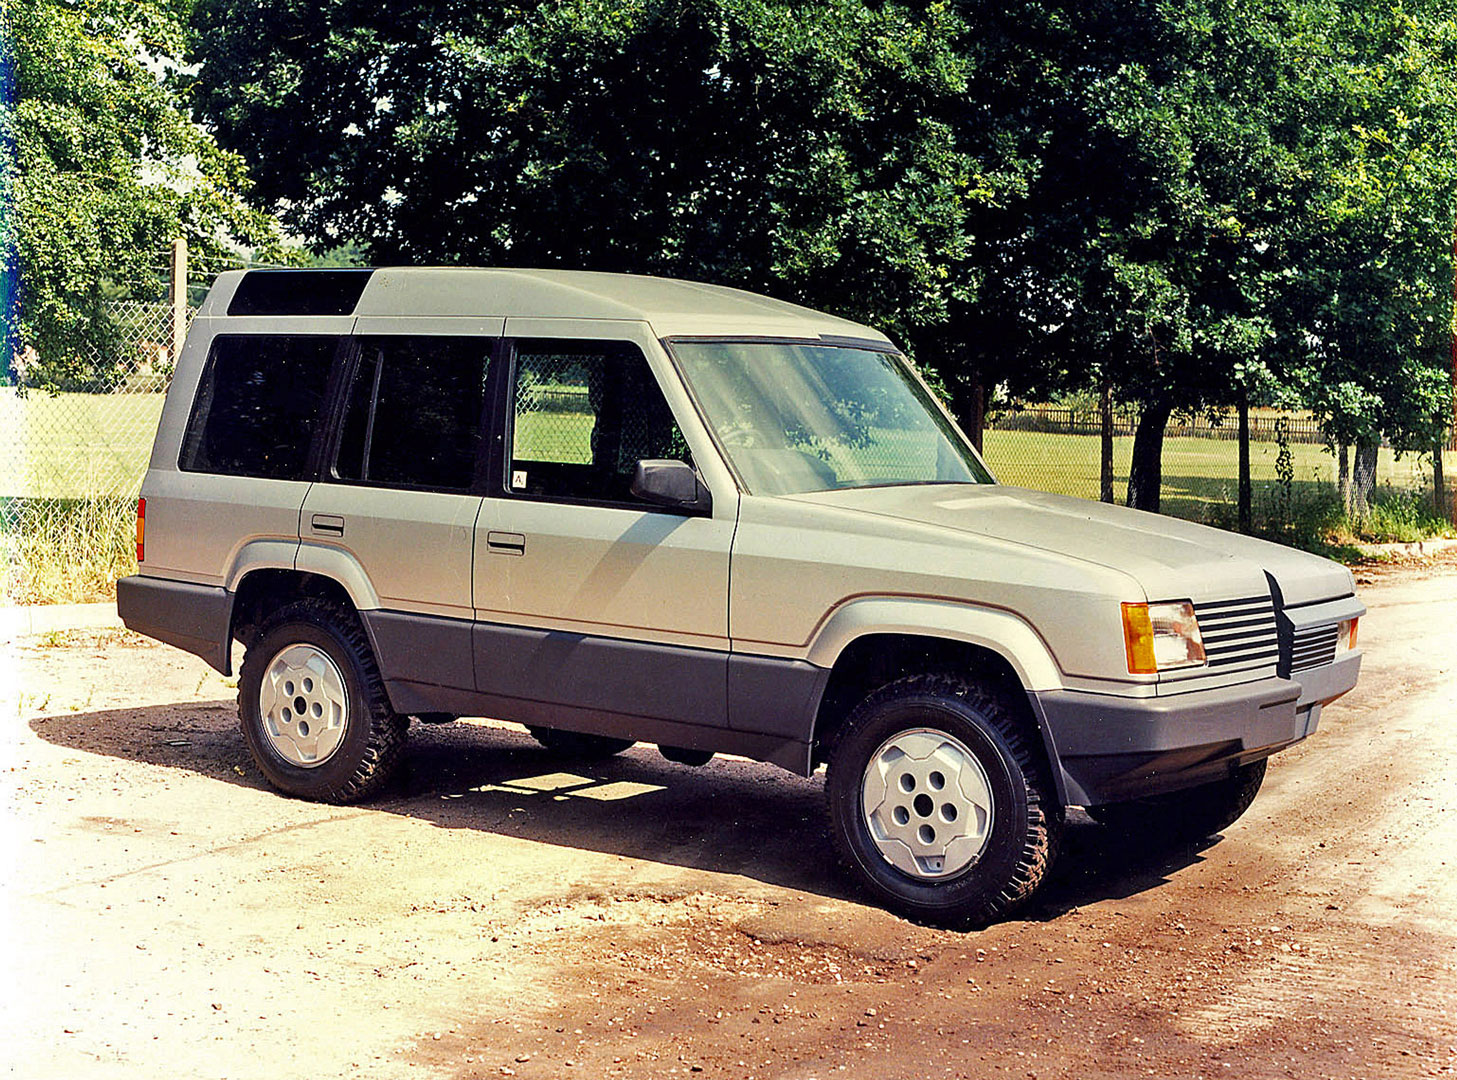 1986 Land Rover Discovery prototype